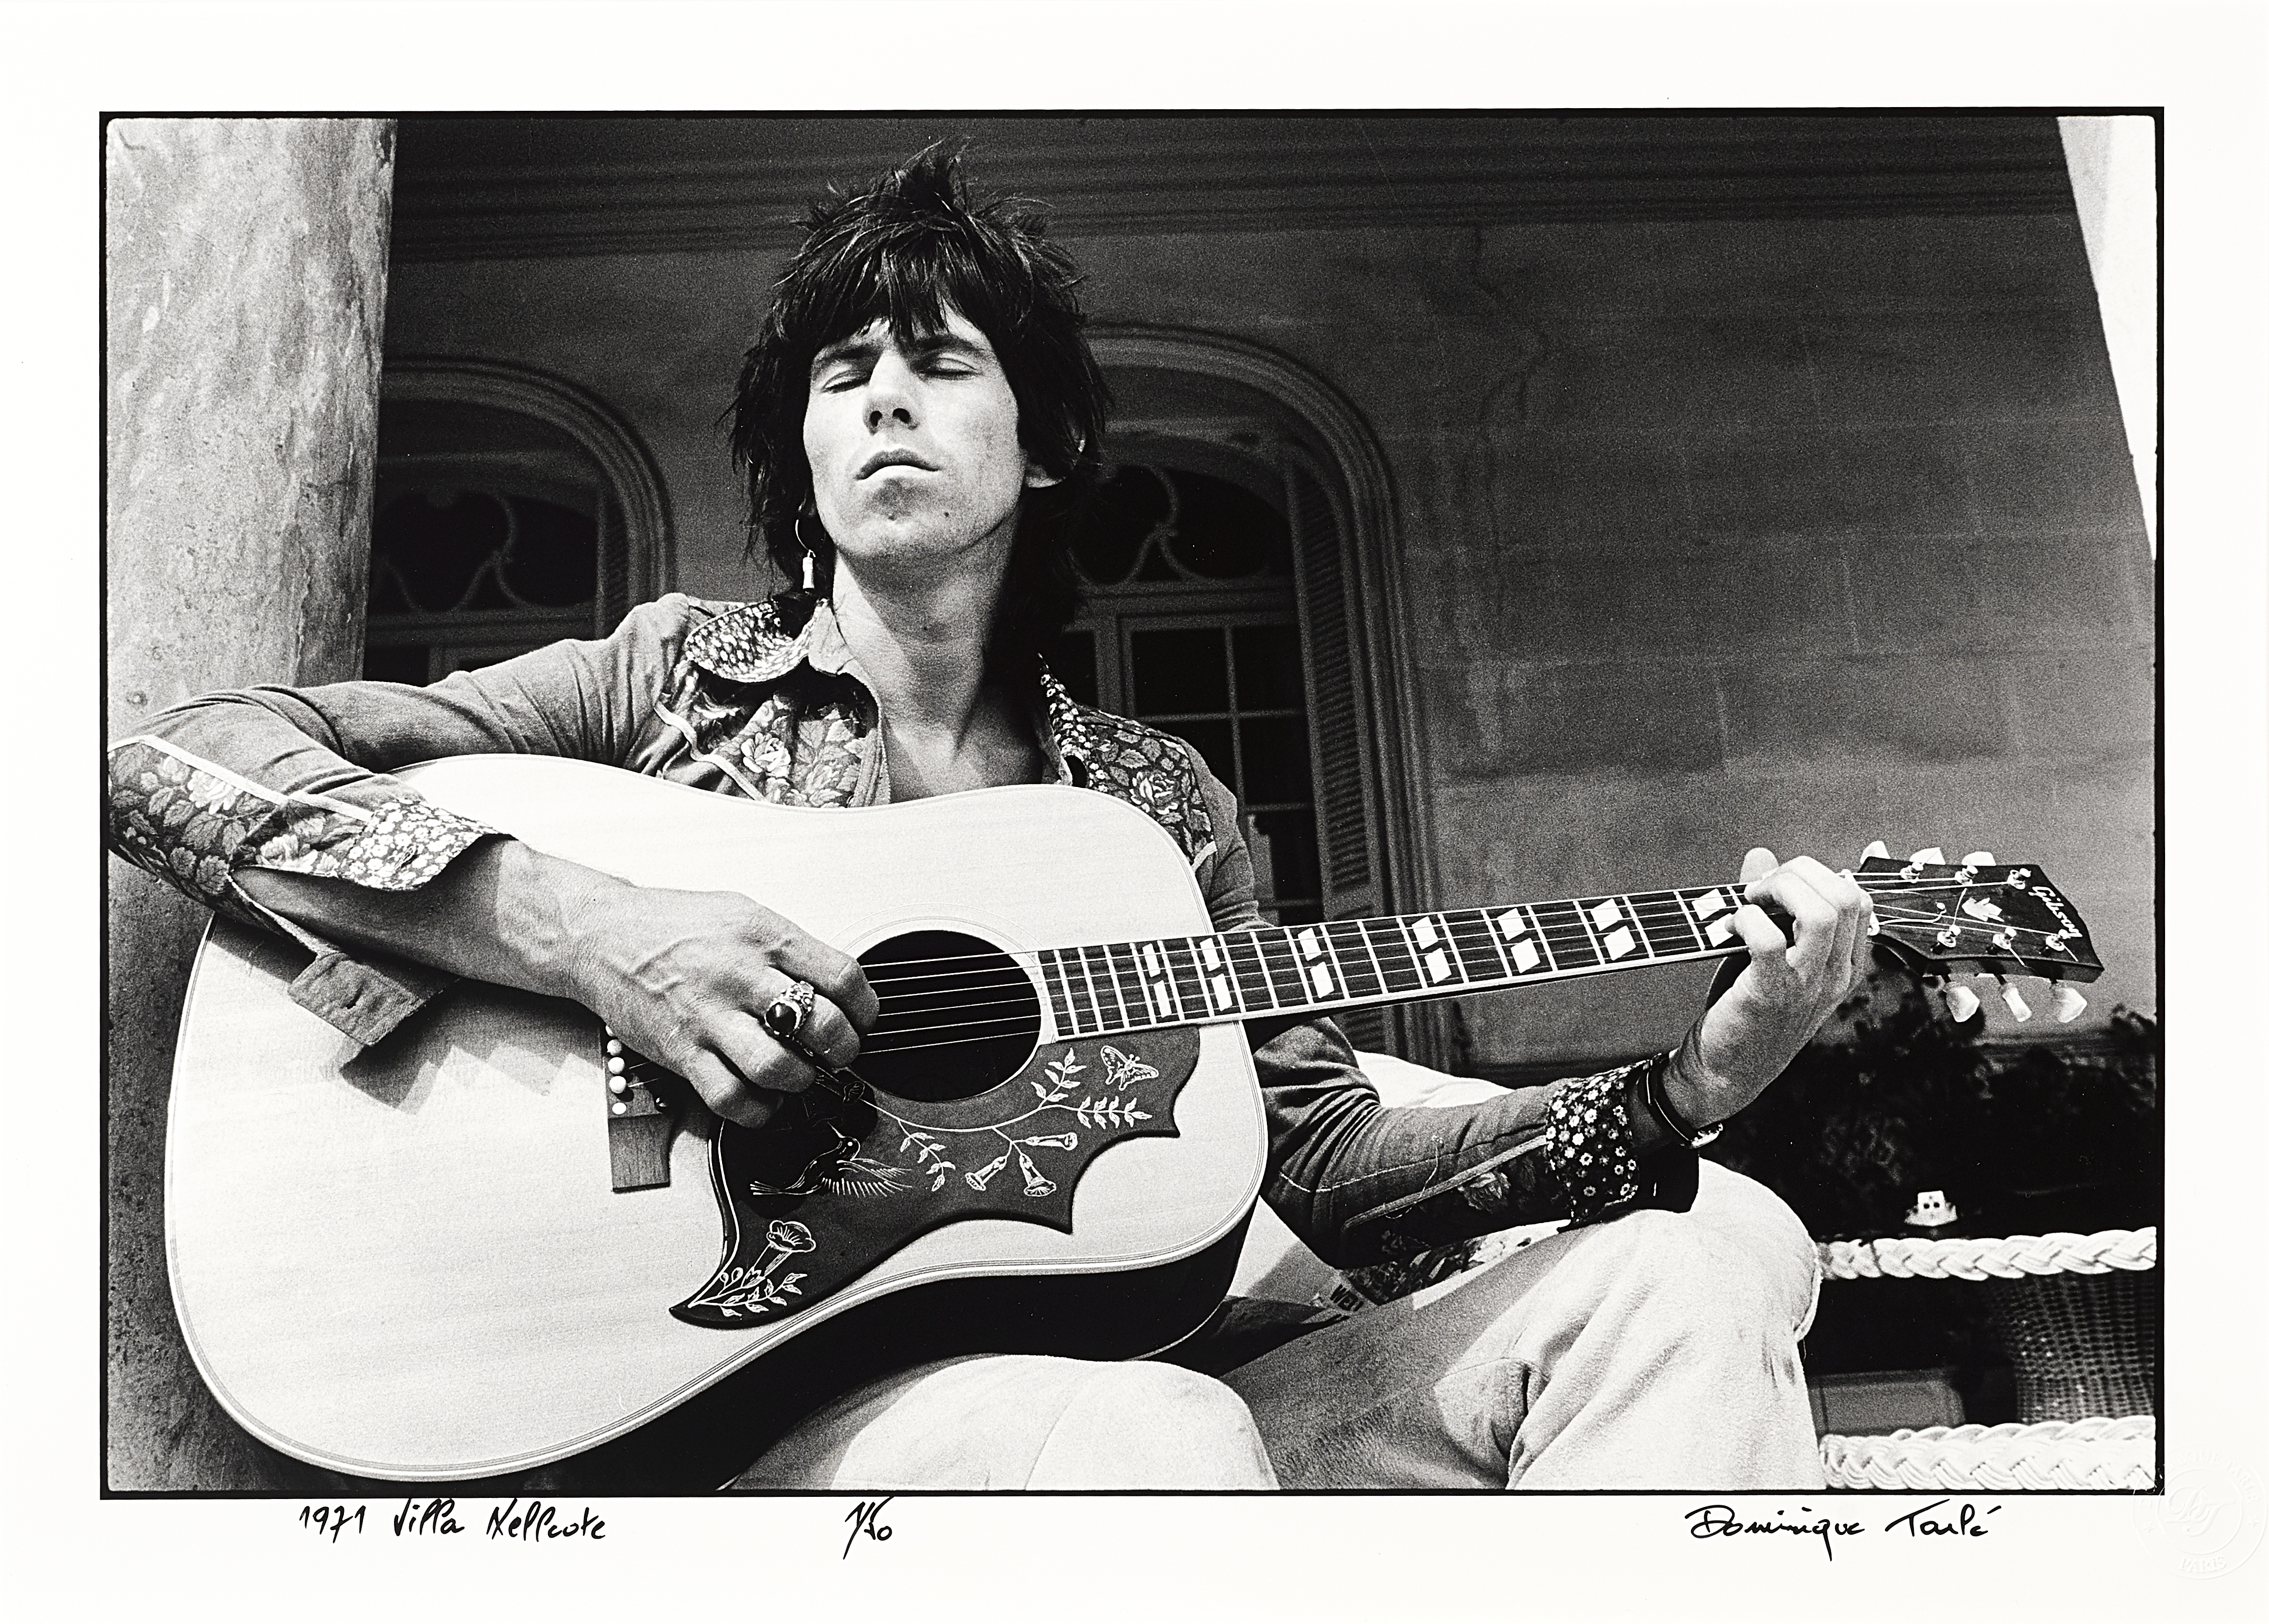 Lot 42 - A Limited Edition Photograph of Keith Richards By Dominique Tarlé (French, born 1949) Titled 'Vil...